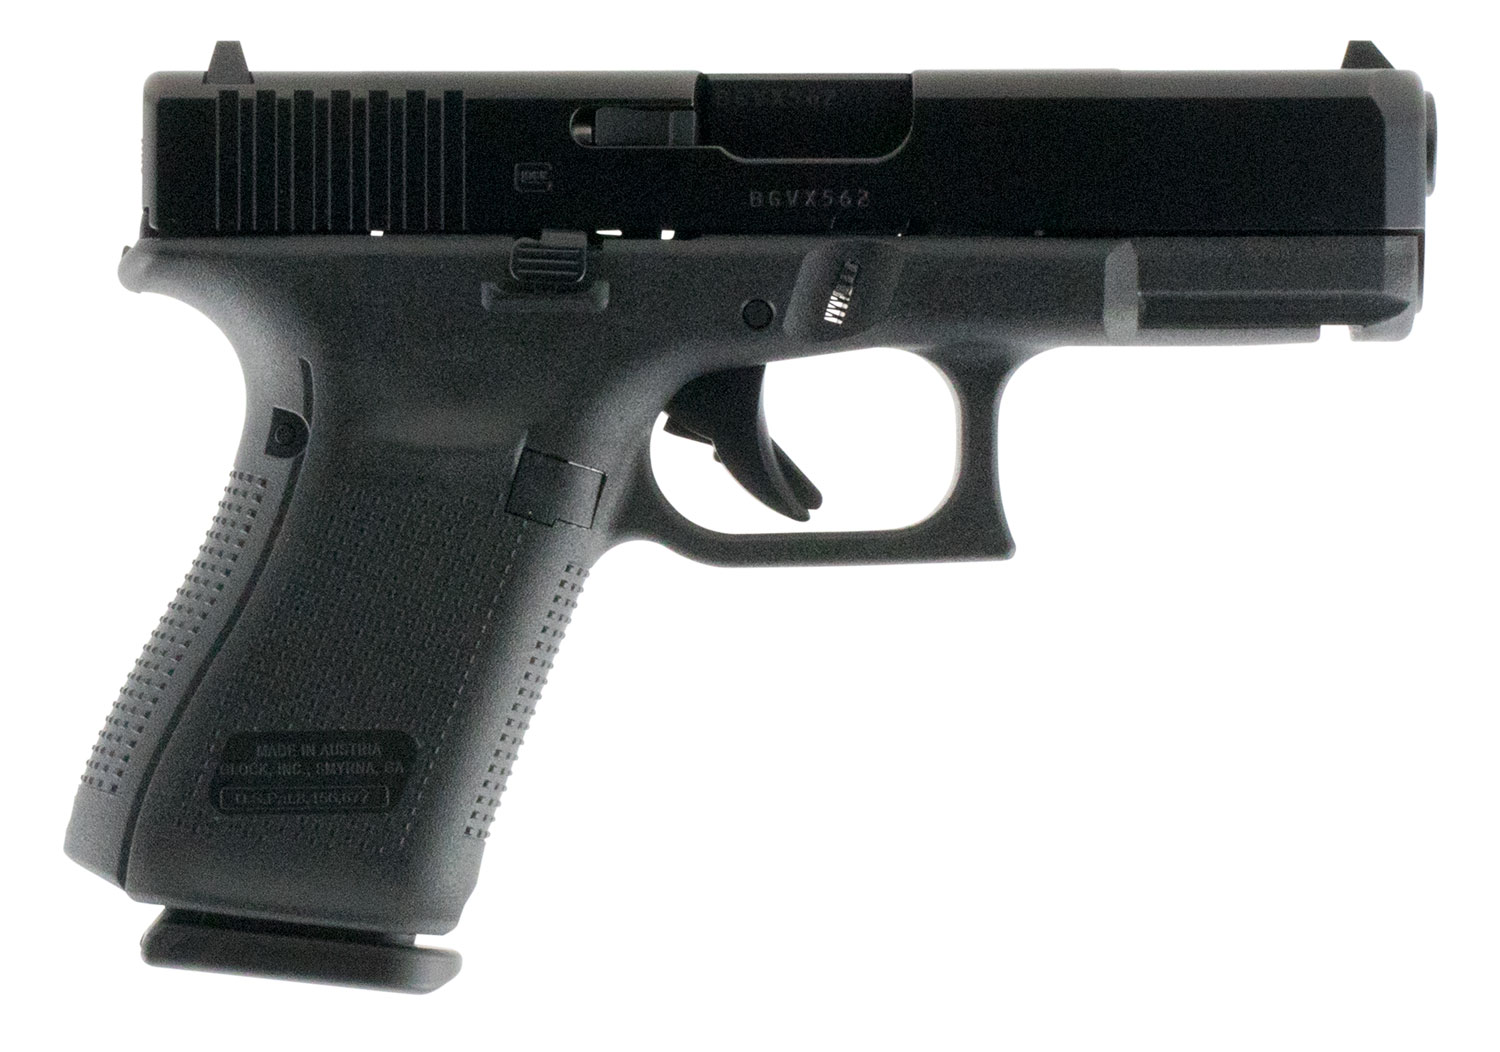 Glock PA1950203 G19 Gen5 Double 9mm Luger 4.02